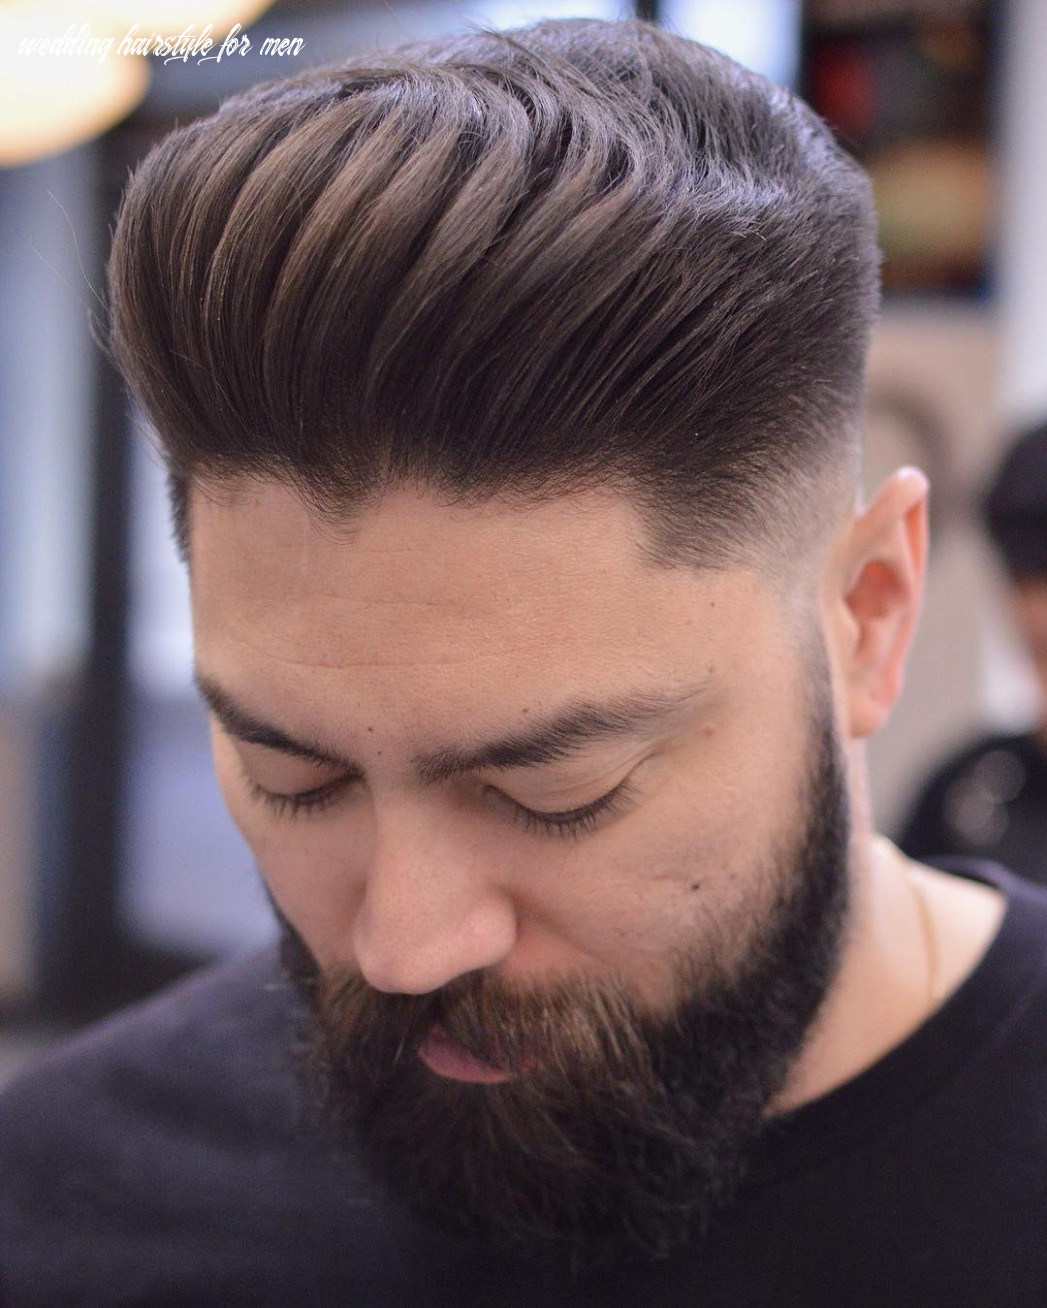 Decent hairstyles for wedding loose textured skin fade pompadour